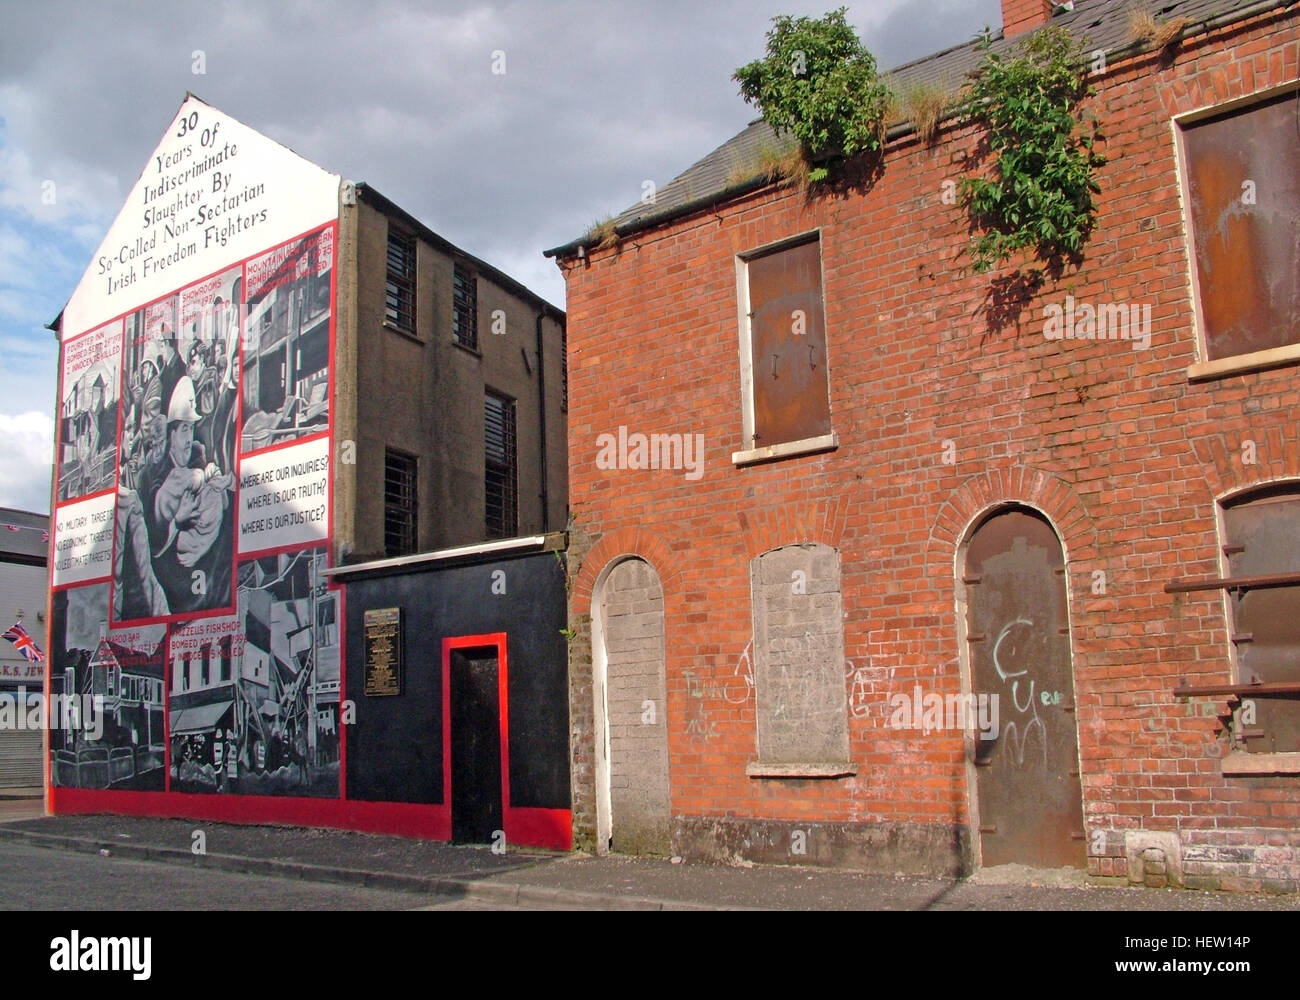 Shankill Road Mural -thirty years of slaughter, West Belfast, Northern Ireland, UK - Stock Image